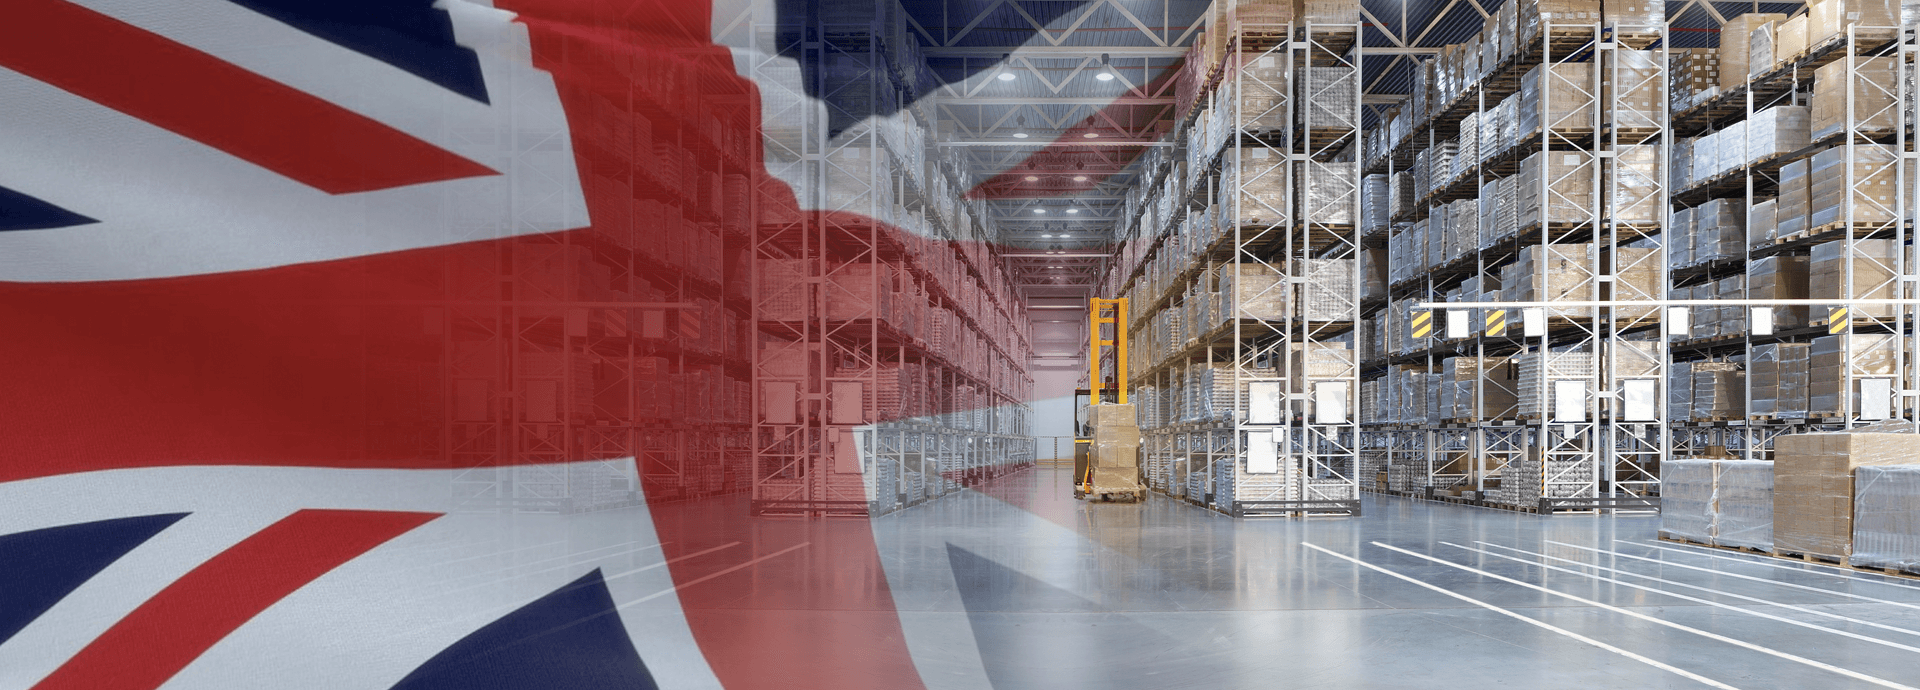 UK Fulfillment Warehouse